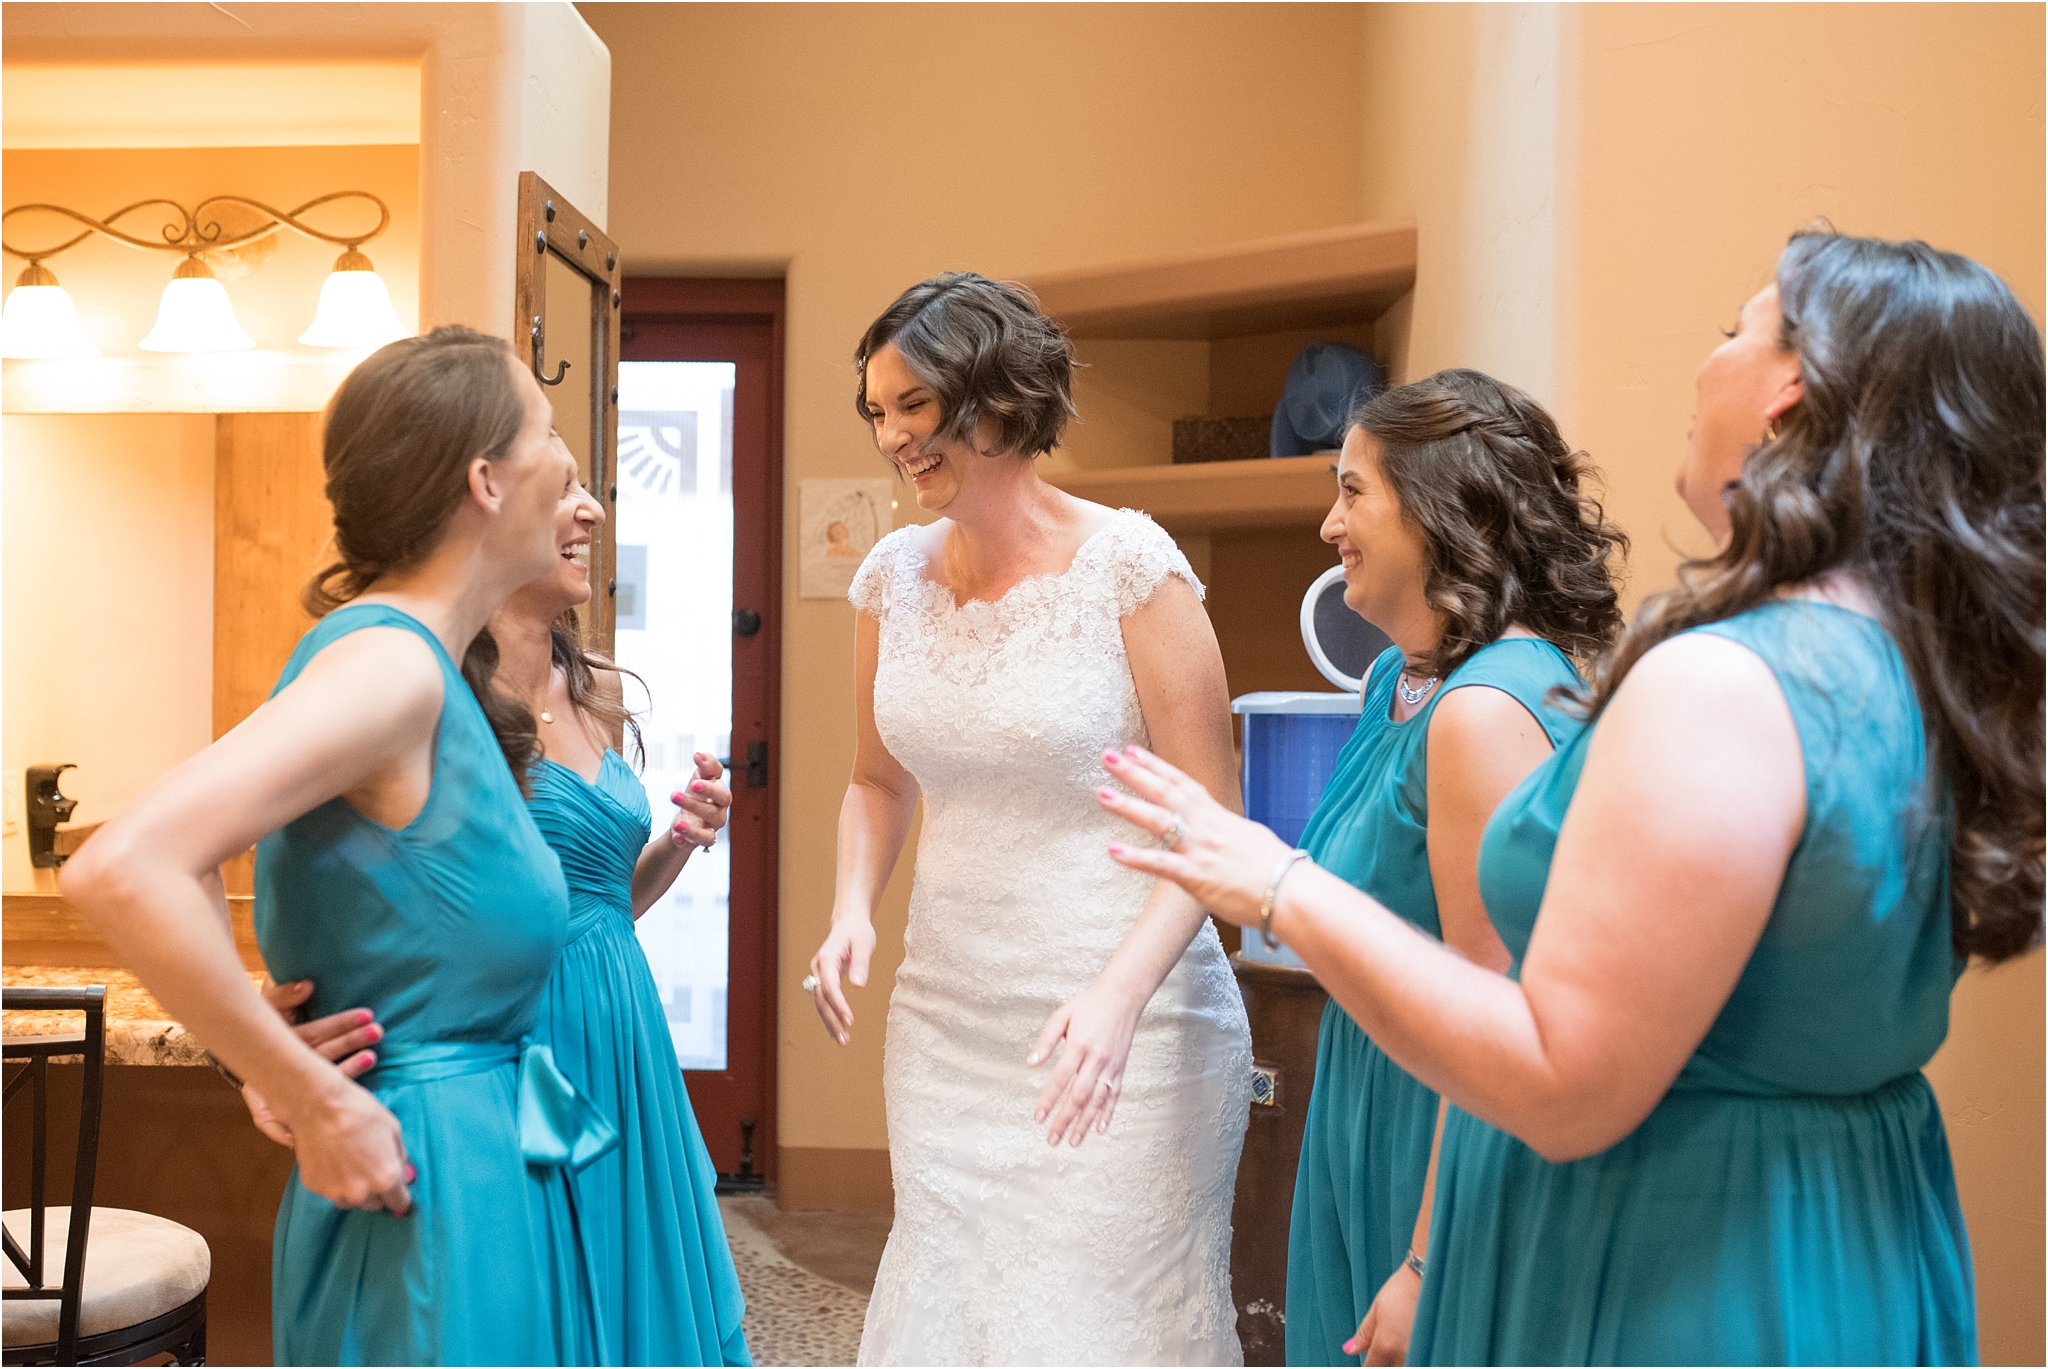 kayla kitts photography - albuquerque wedding photographer - new mexico wedding photographer - desination wedding photographer - cabo wedding photographer_0063.jpg